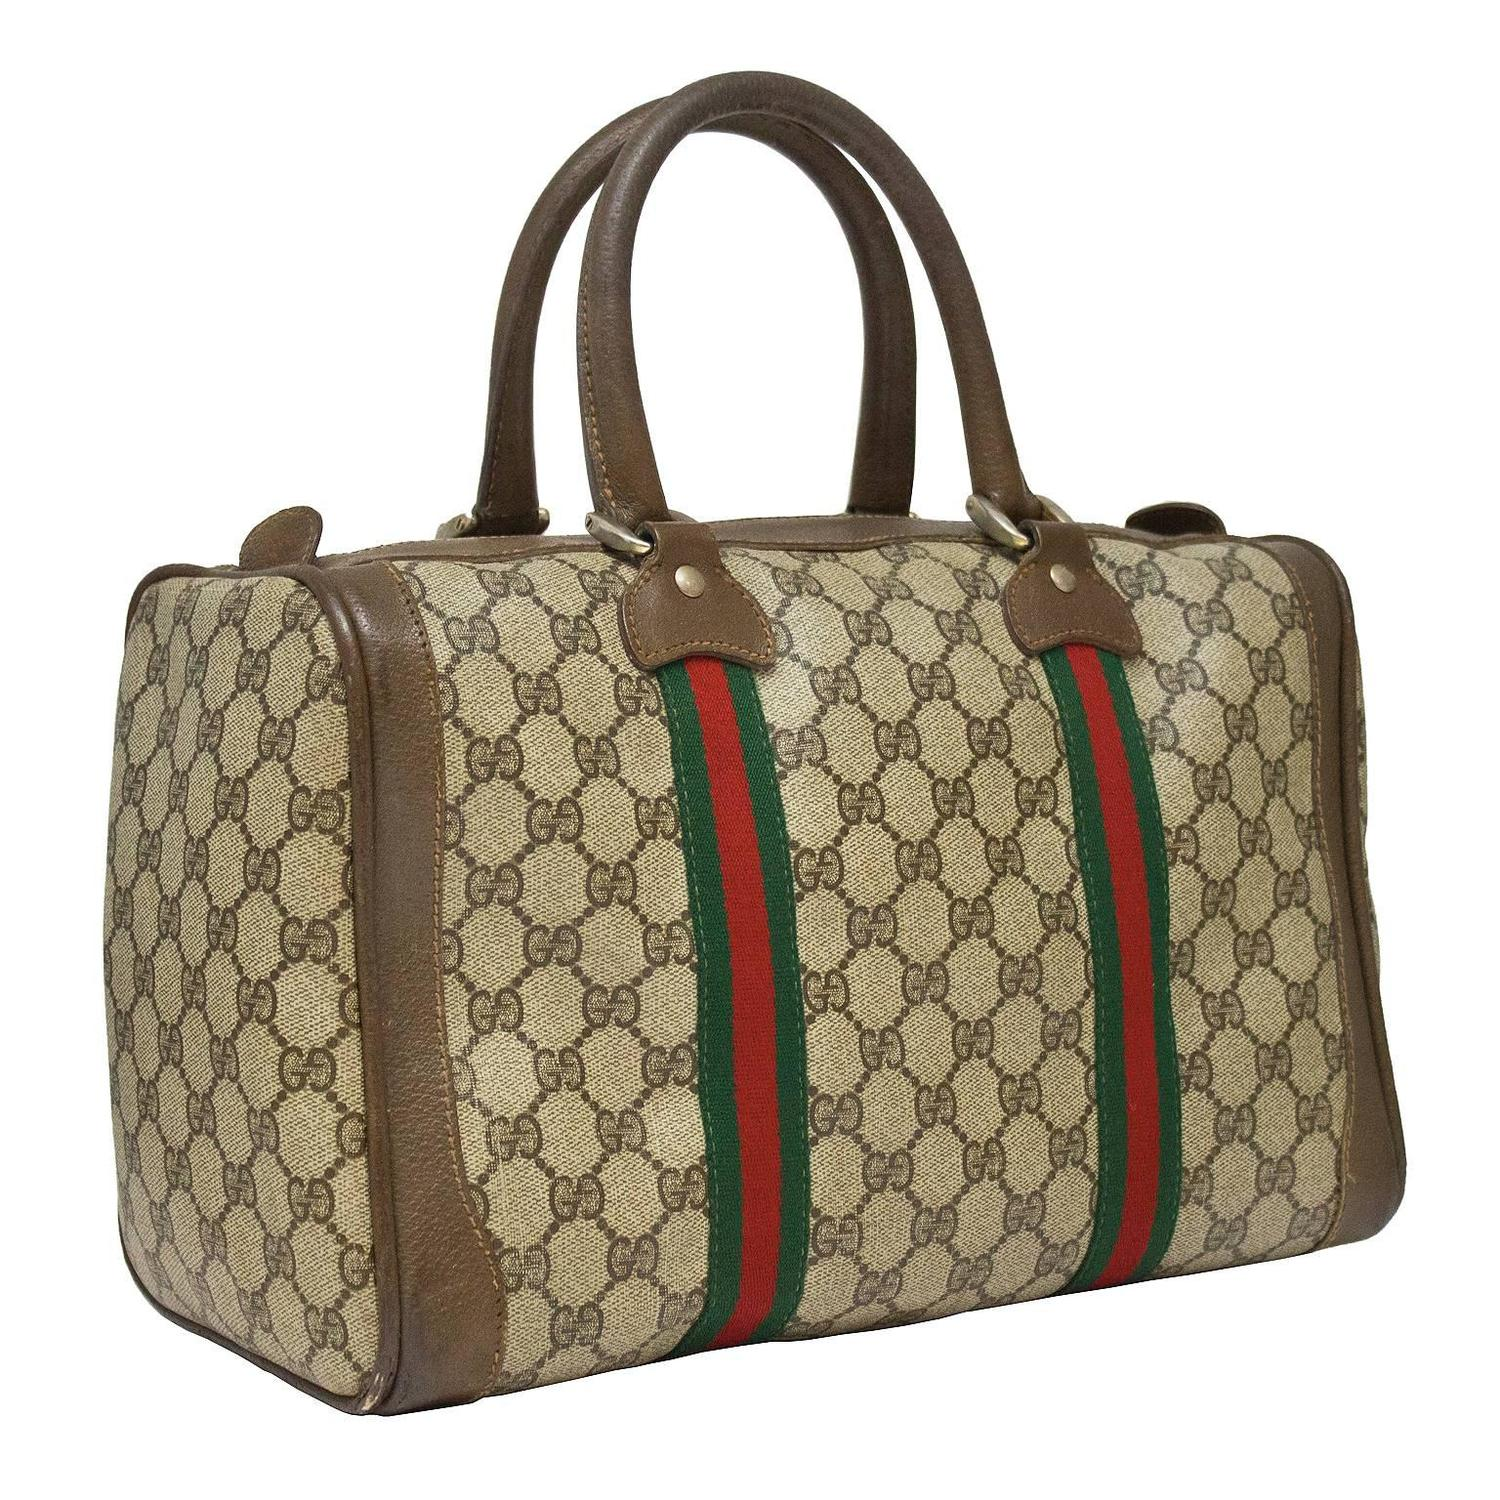 a2c879cc3fd9 1970 s Gucci Monogram Boston Bag at 1stdibs